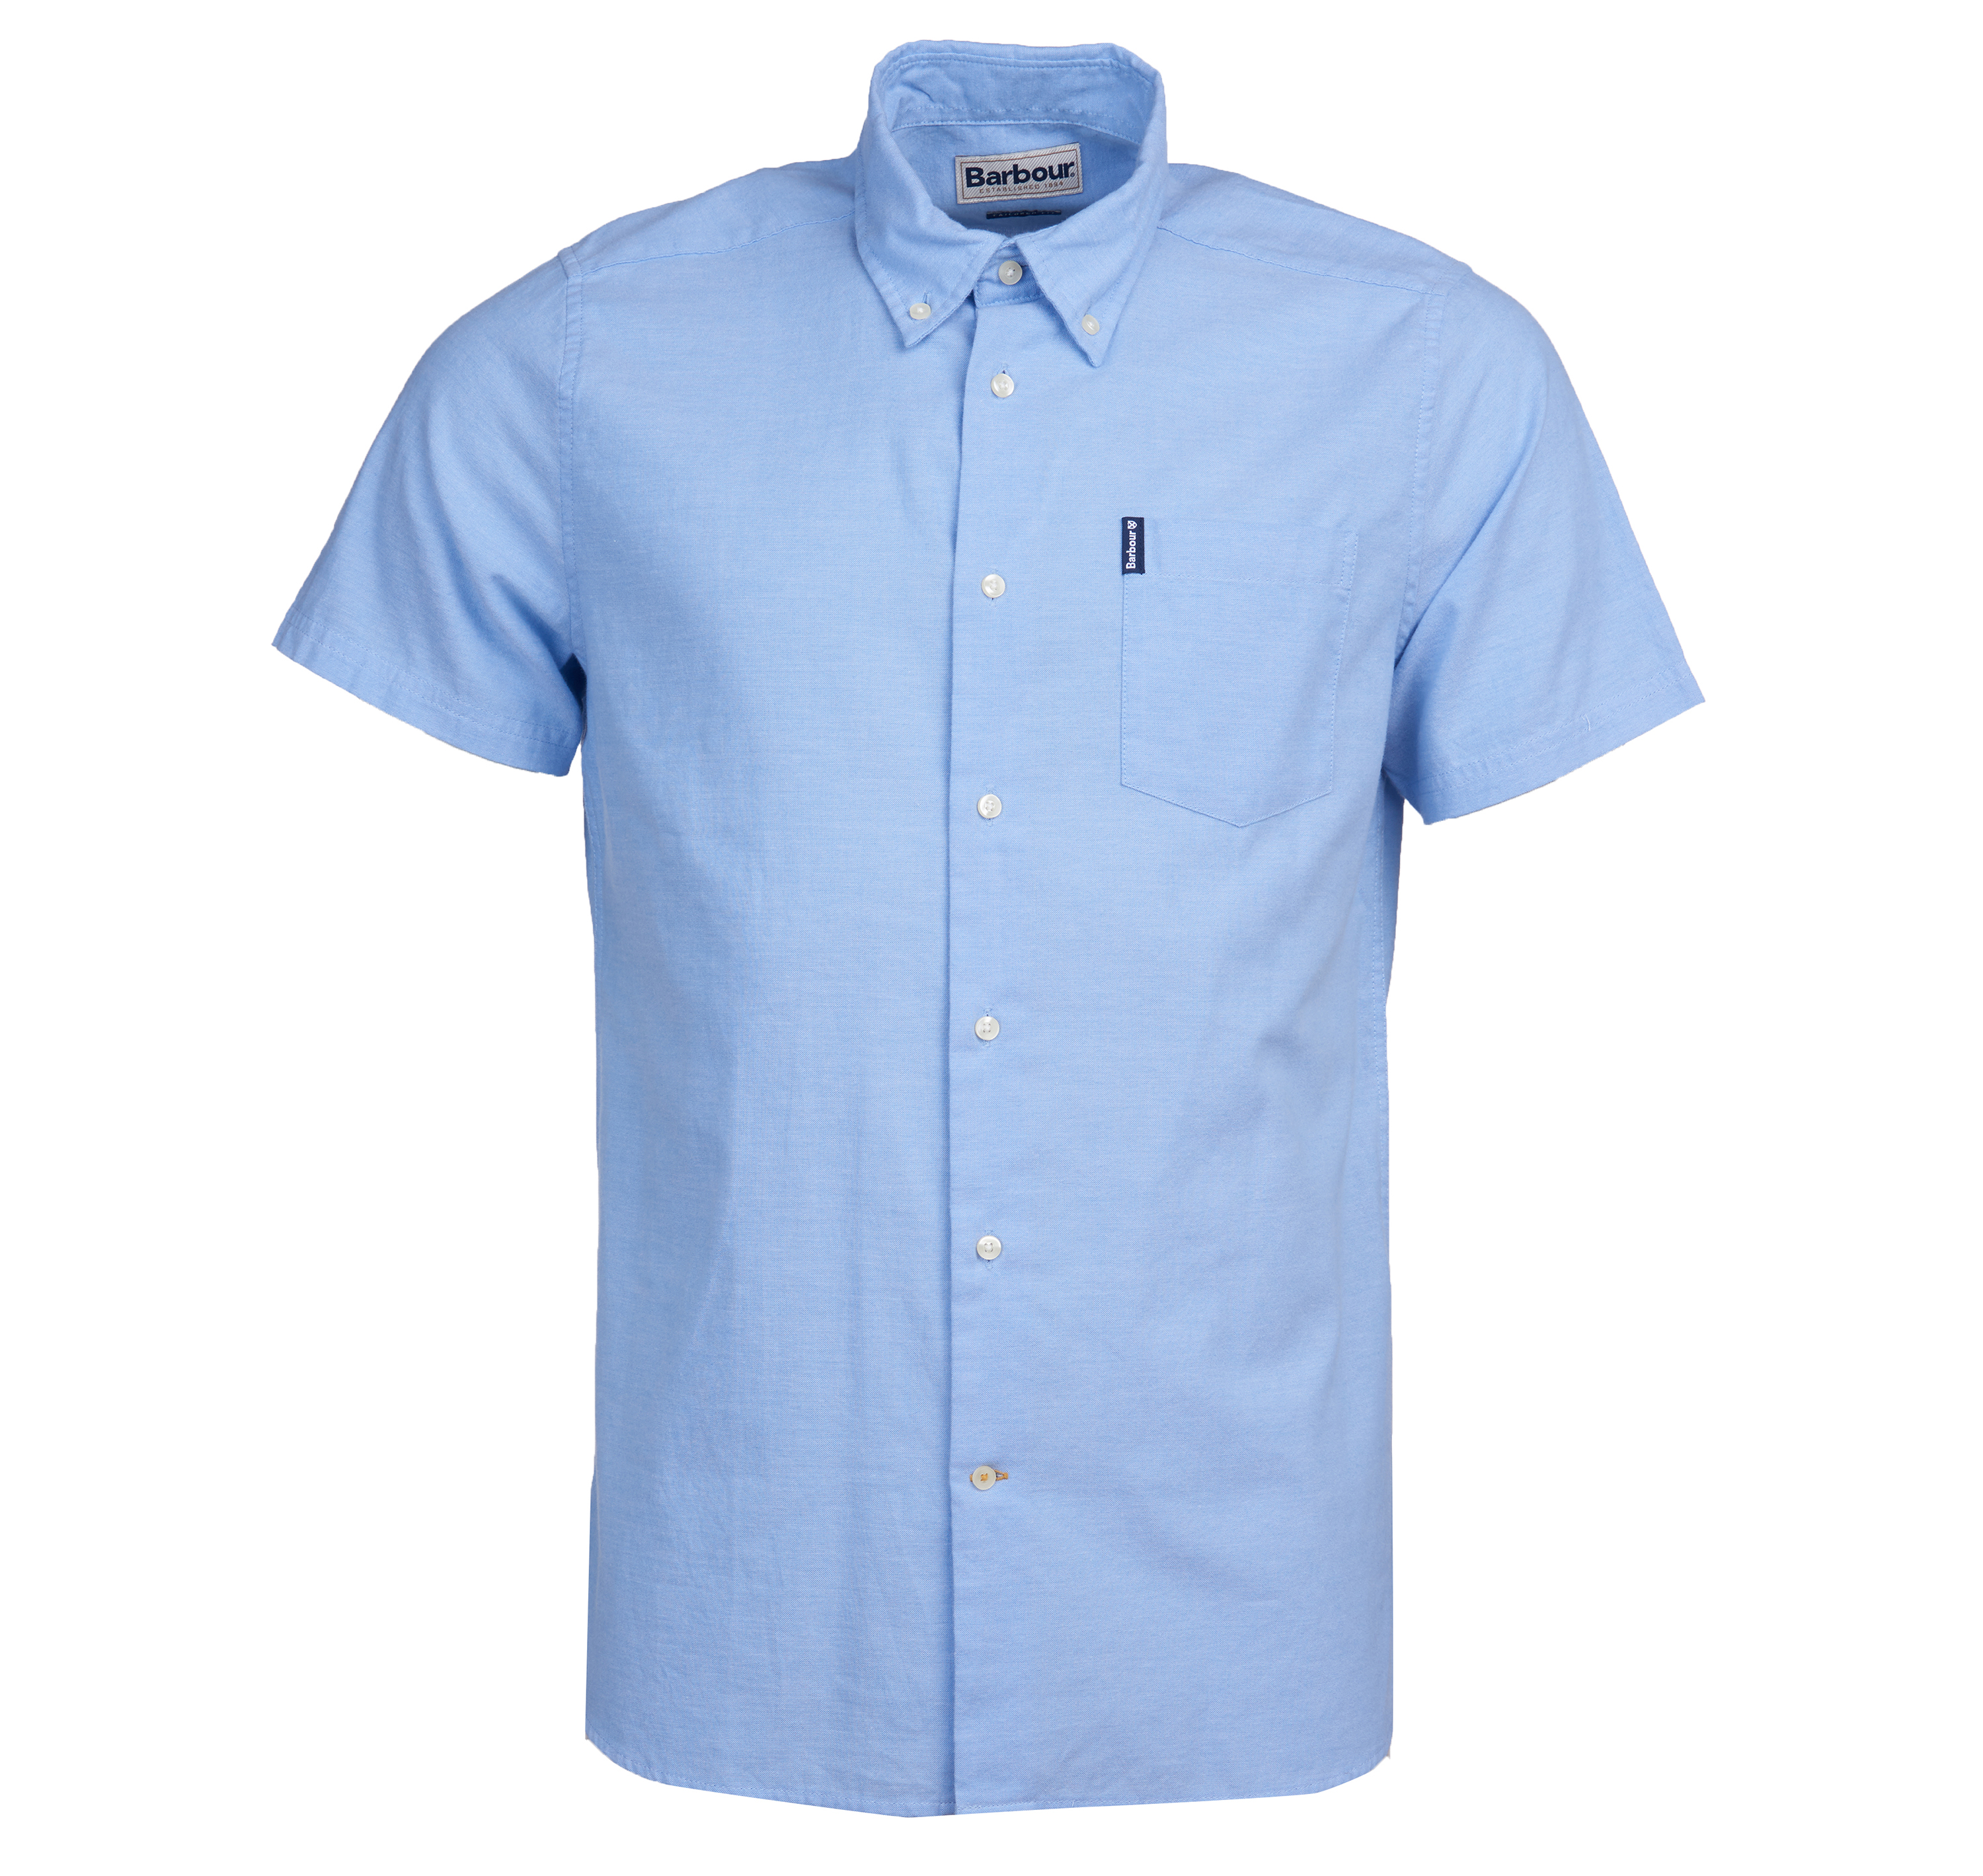 Barbour Oxford 9 Short Sleeved Shirt Blue